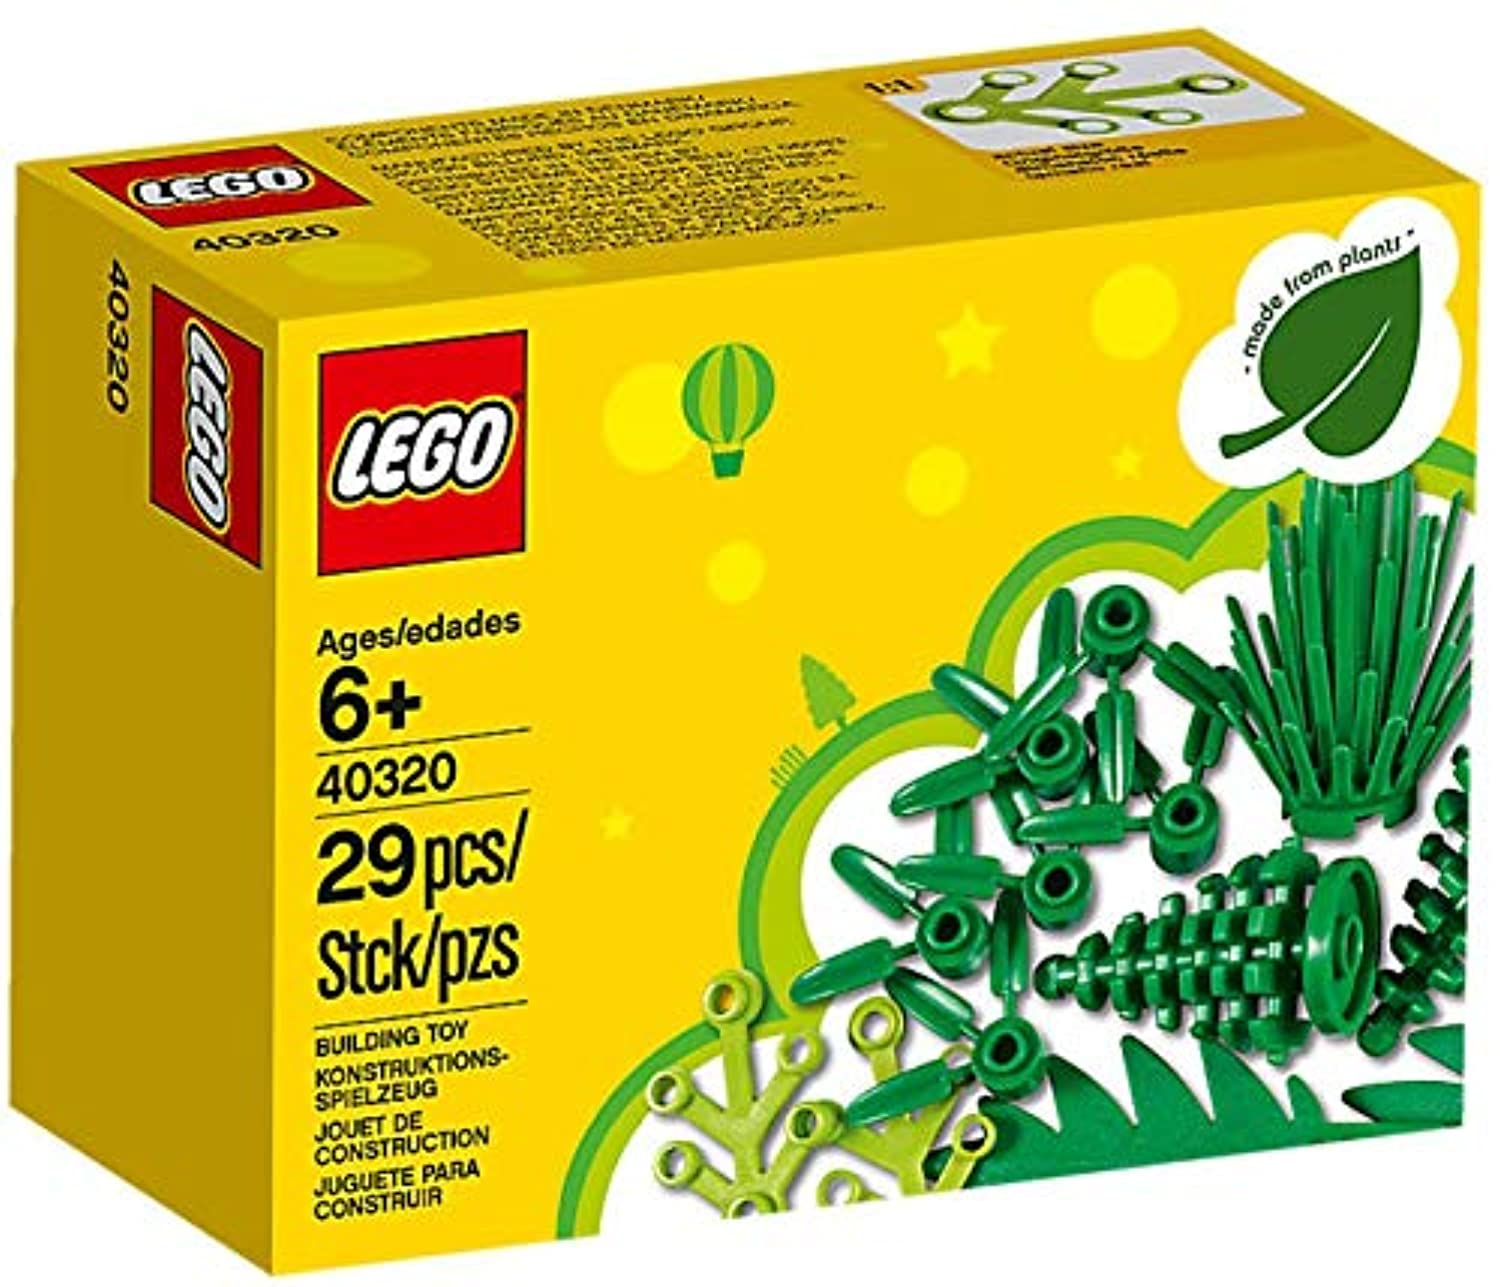 LEGO 40320 Plants From Plants (Made of Sustainable Materials)